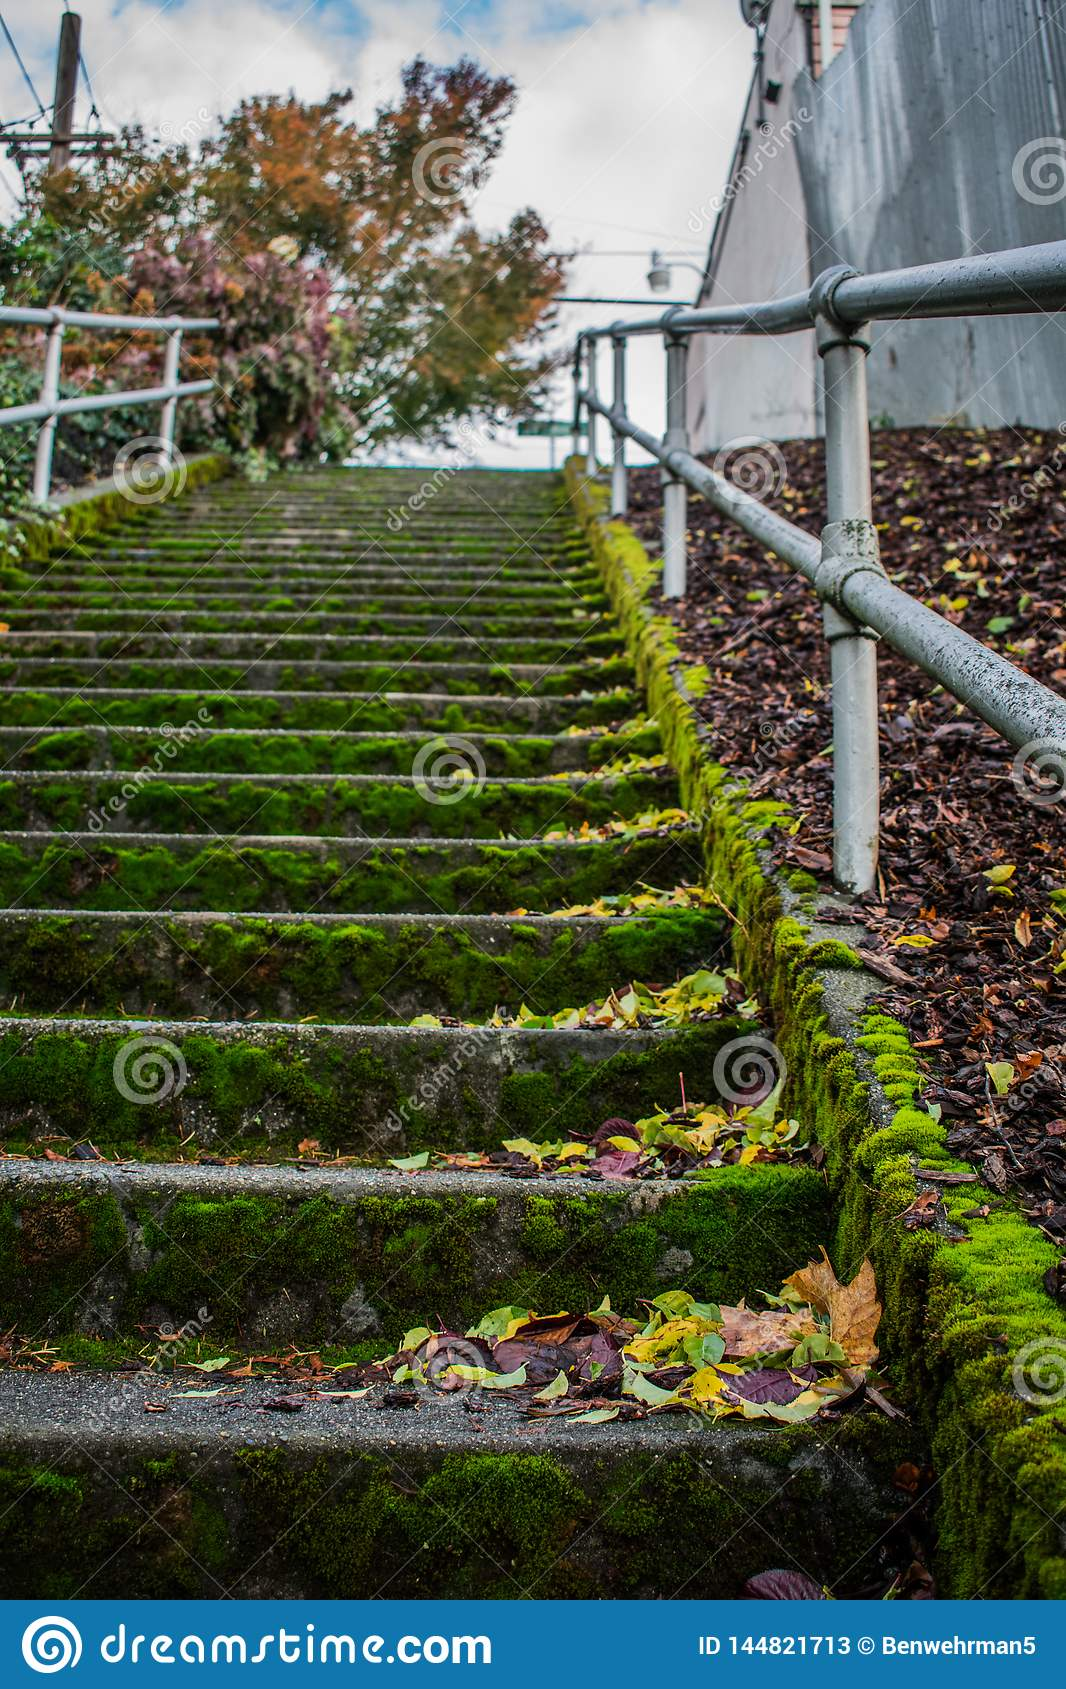 Mossy Staircase in the City